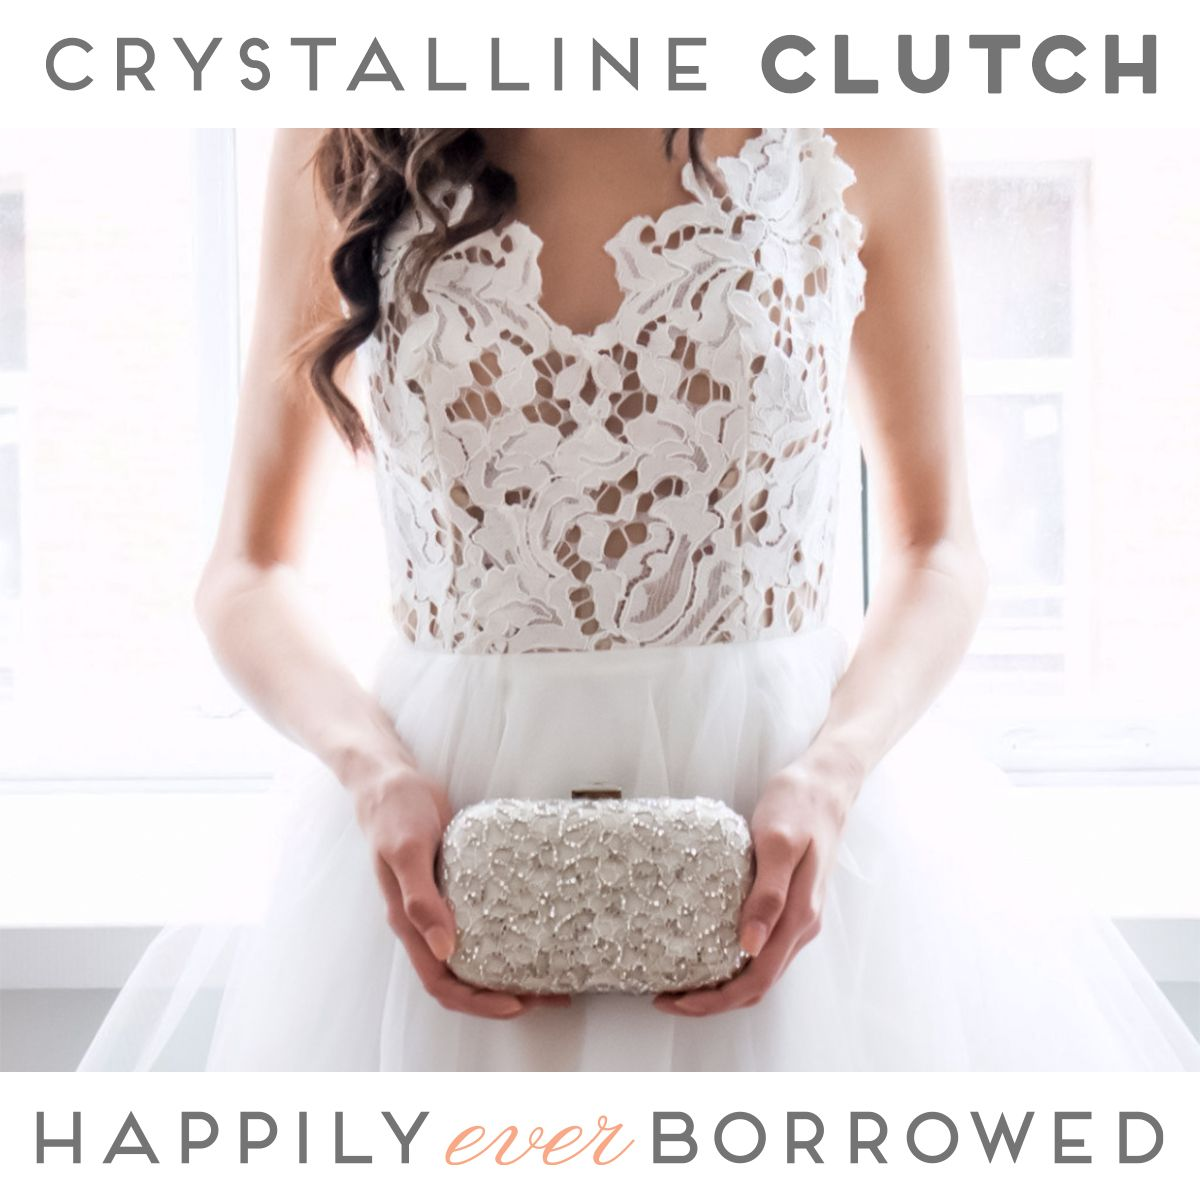 Get your bridal sparkle on with Elizabeth Bower Crystalline Clutch  with lace crystal embellishments!  Want it? Rent it!  https://www.happilyeverborrowed.com/collections/clutches/products/crystalline-clutch?variant=261491870